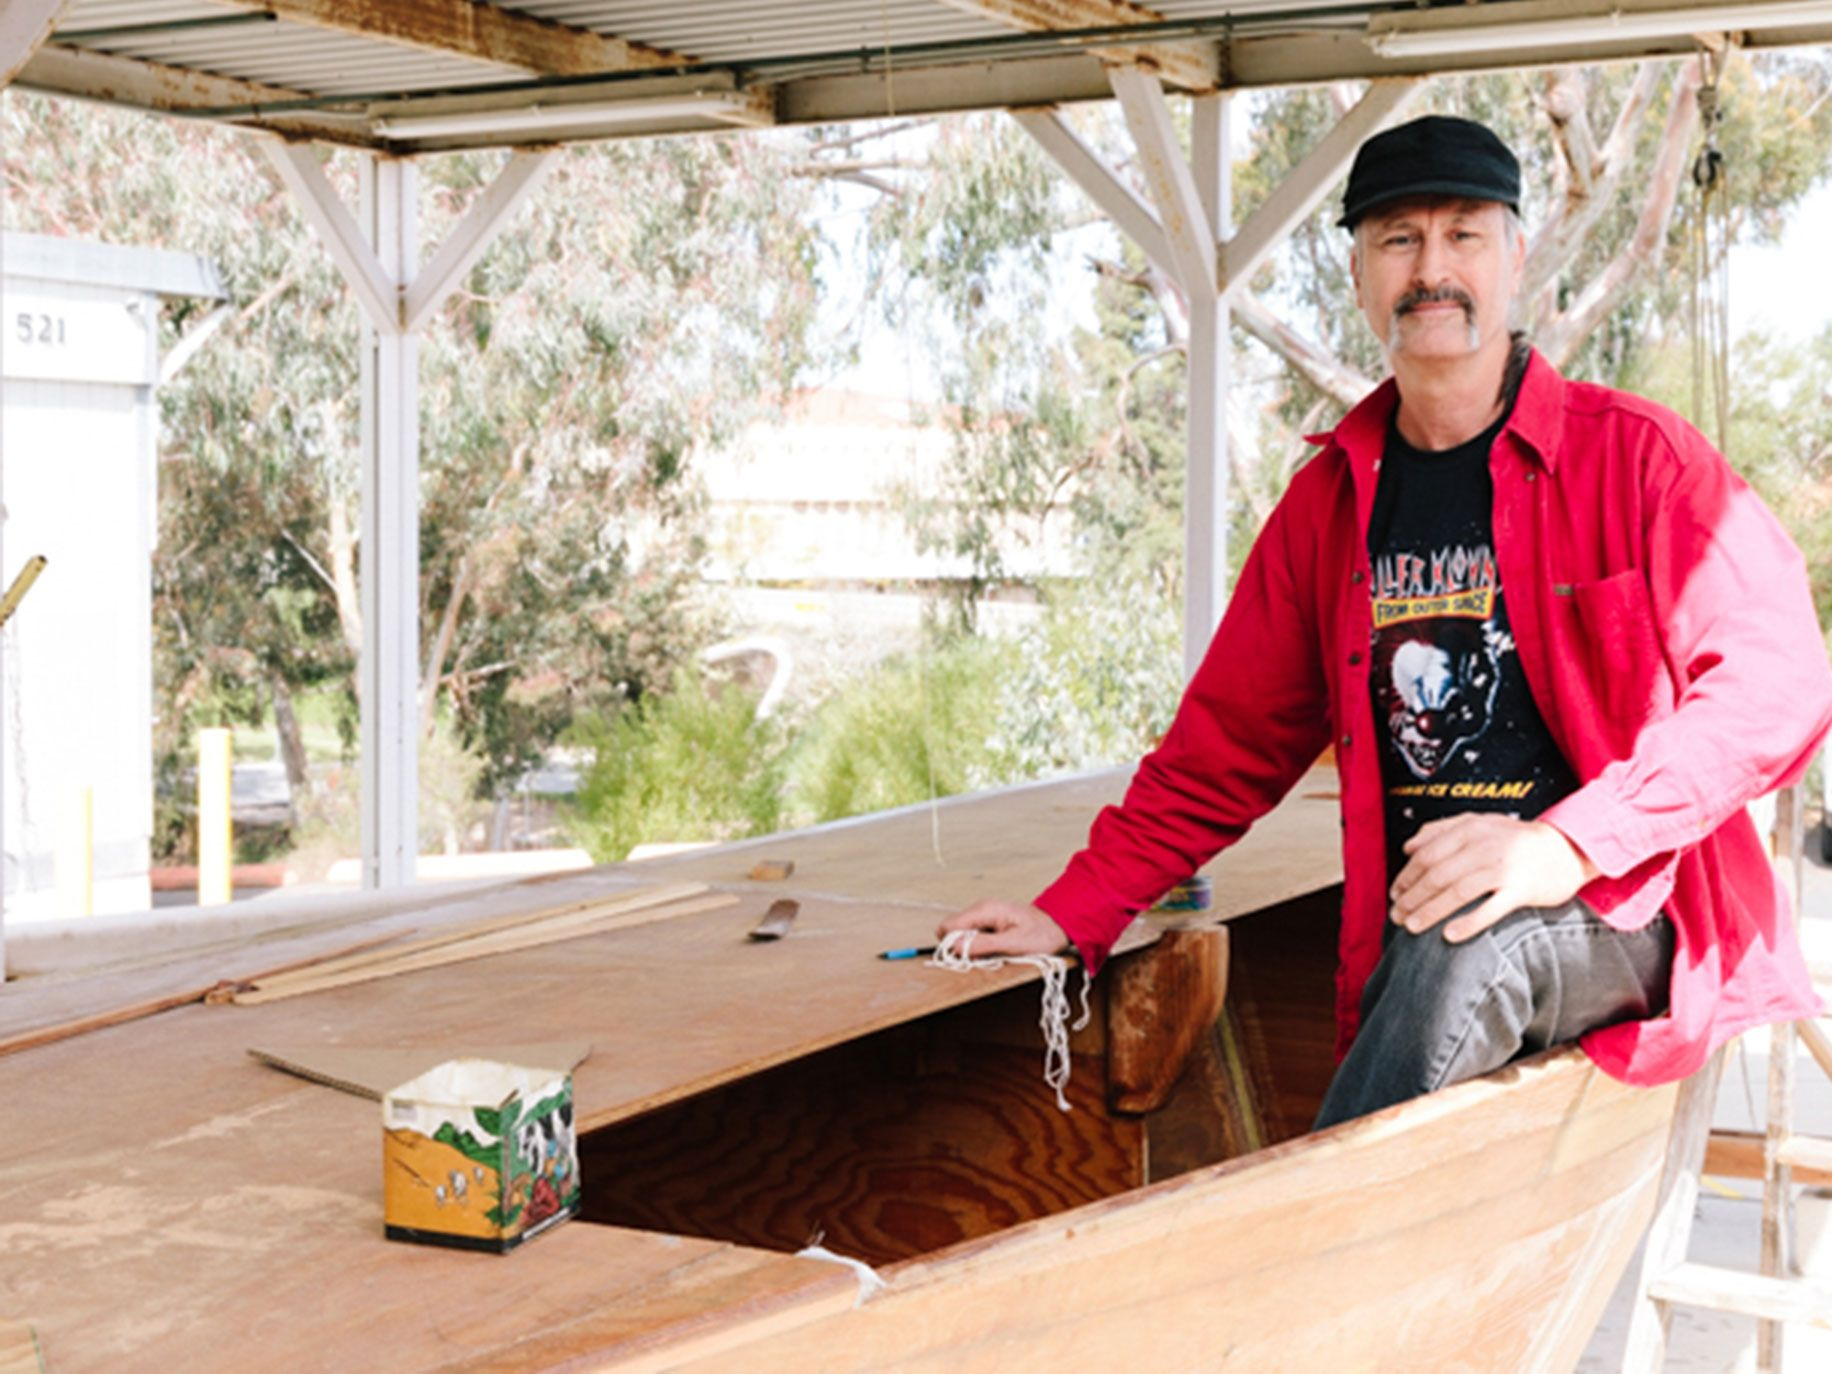 UC Irvine professor Simon Penny is building a replica of a proa, a Micronesian outrigger boat, to demonstrate the sophistication of Micronesian boatbuilding and seafaring.